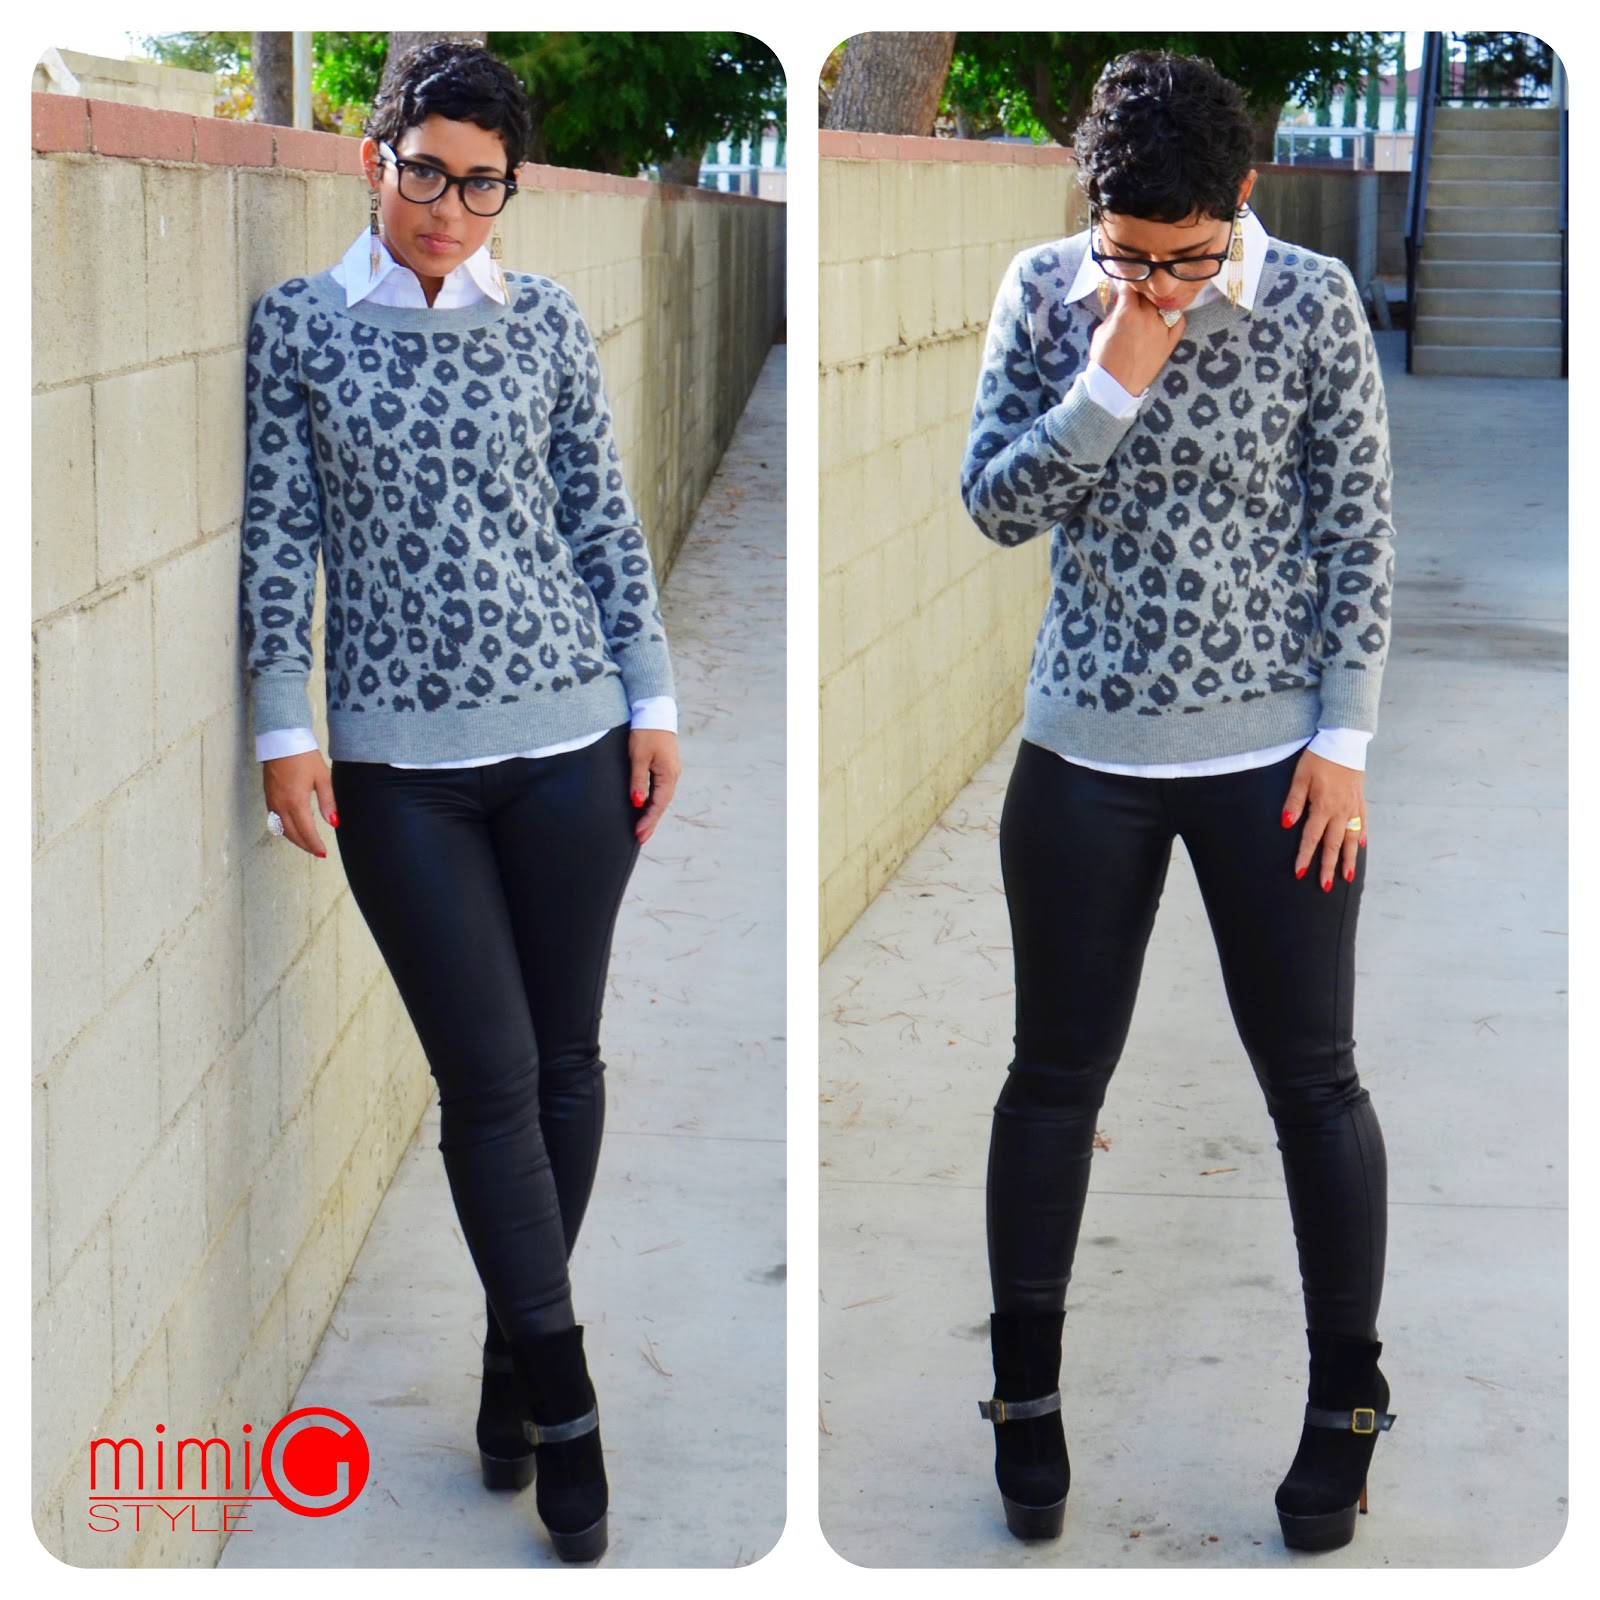 Ootd coated jeans leopard sweater fashion lifestyle and diy